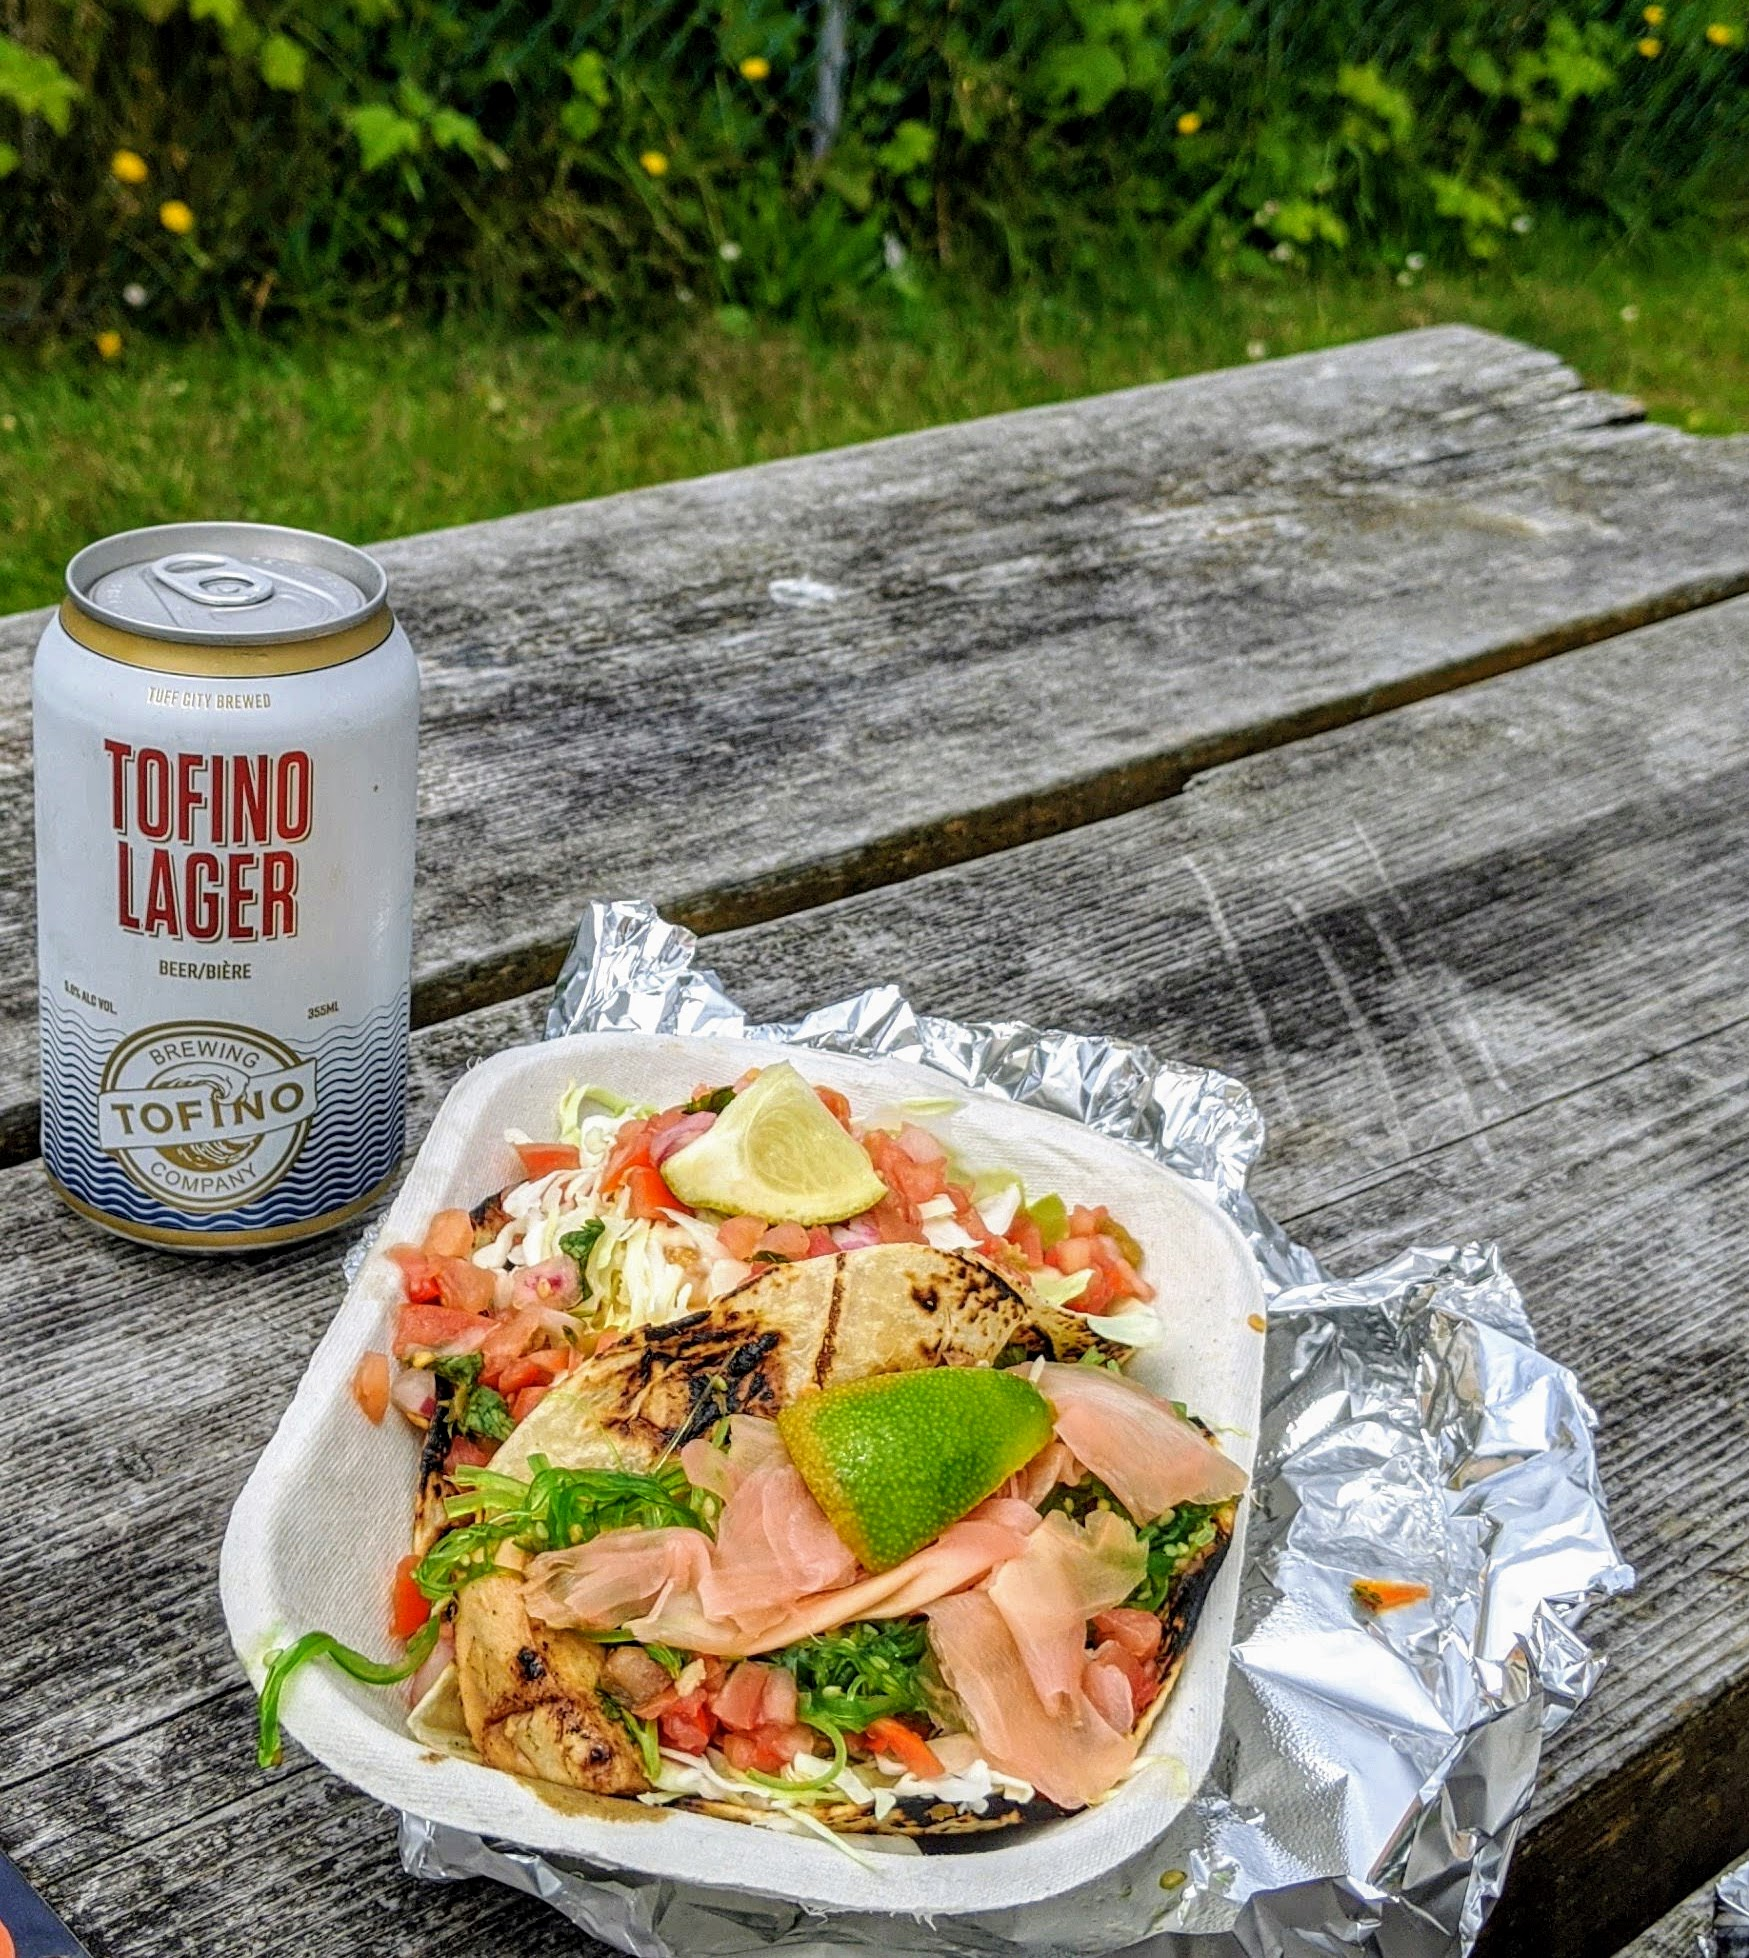 Enjoying tacos from Tacofino in Tofino